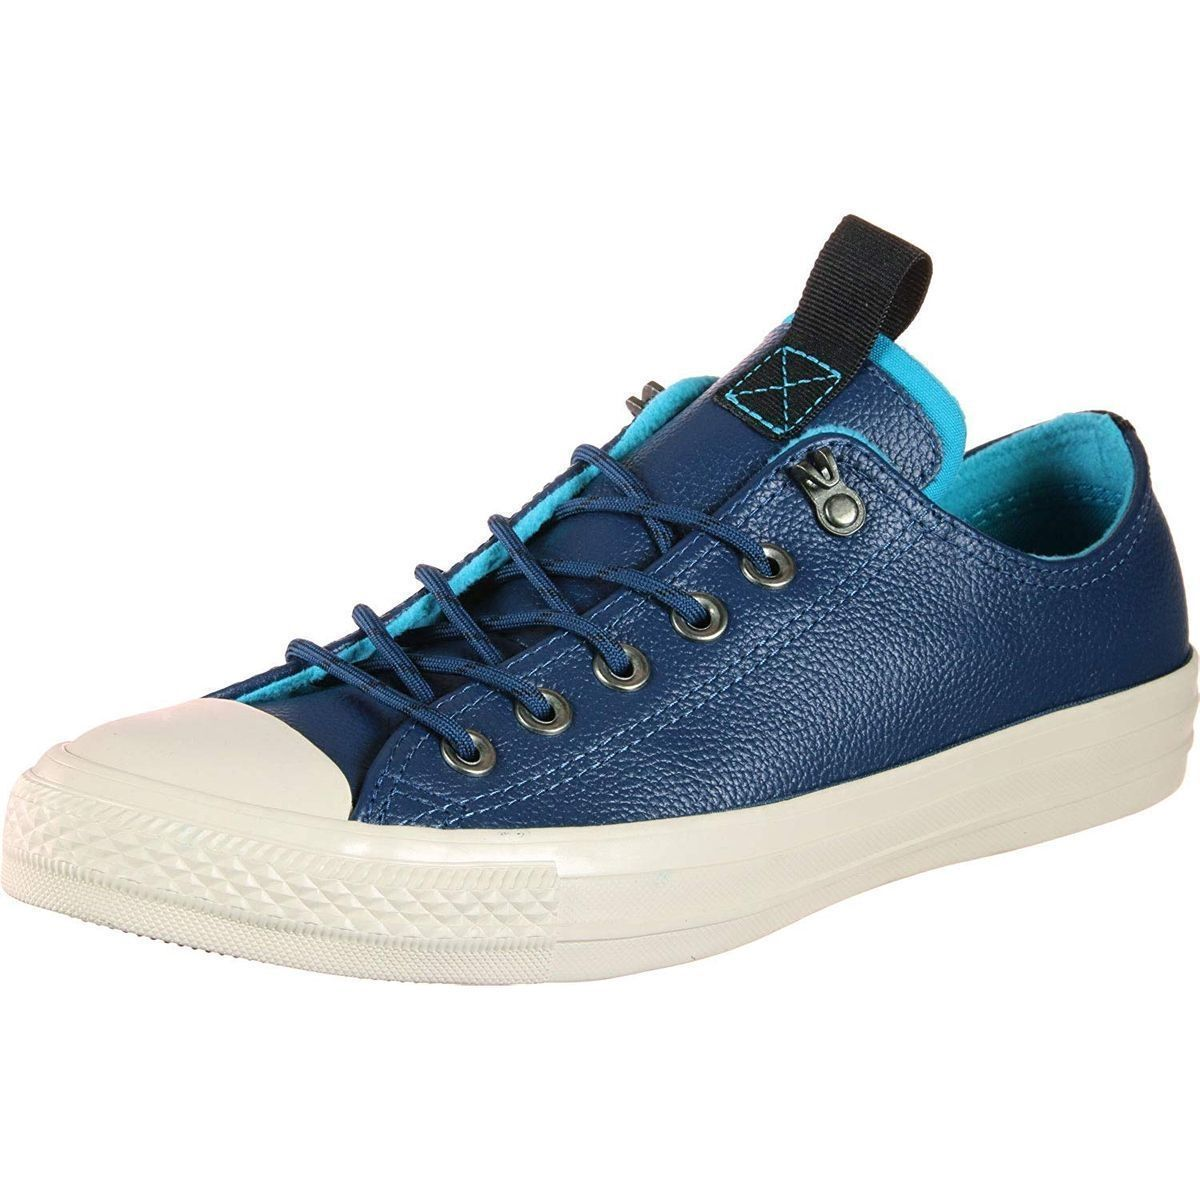 Converse homme chuck taylor all star leather   ox bleu1127601_2